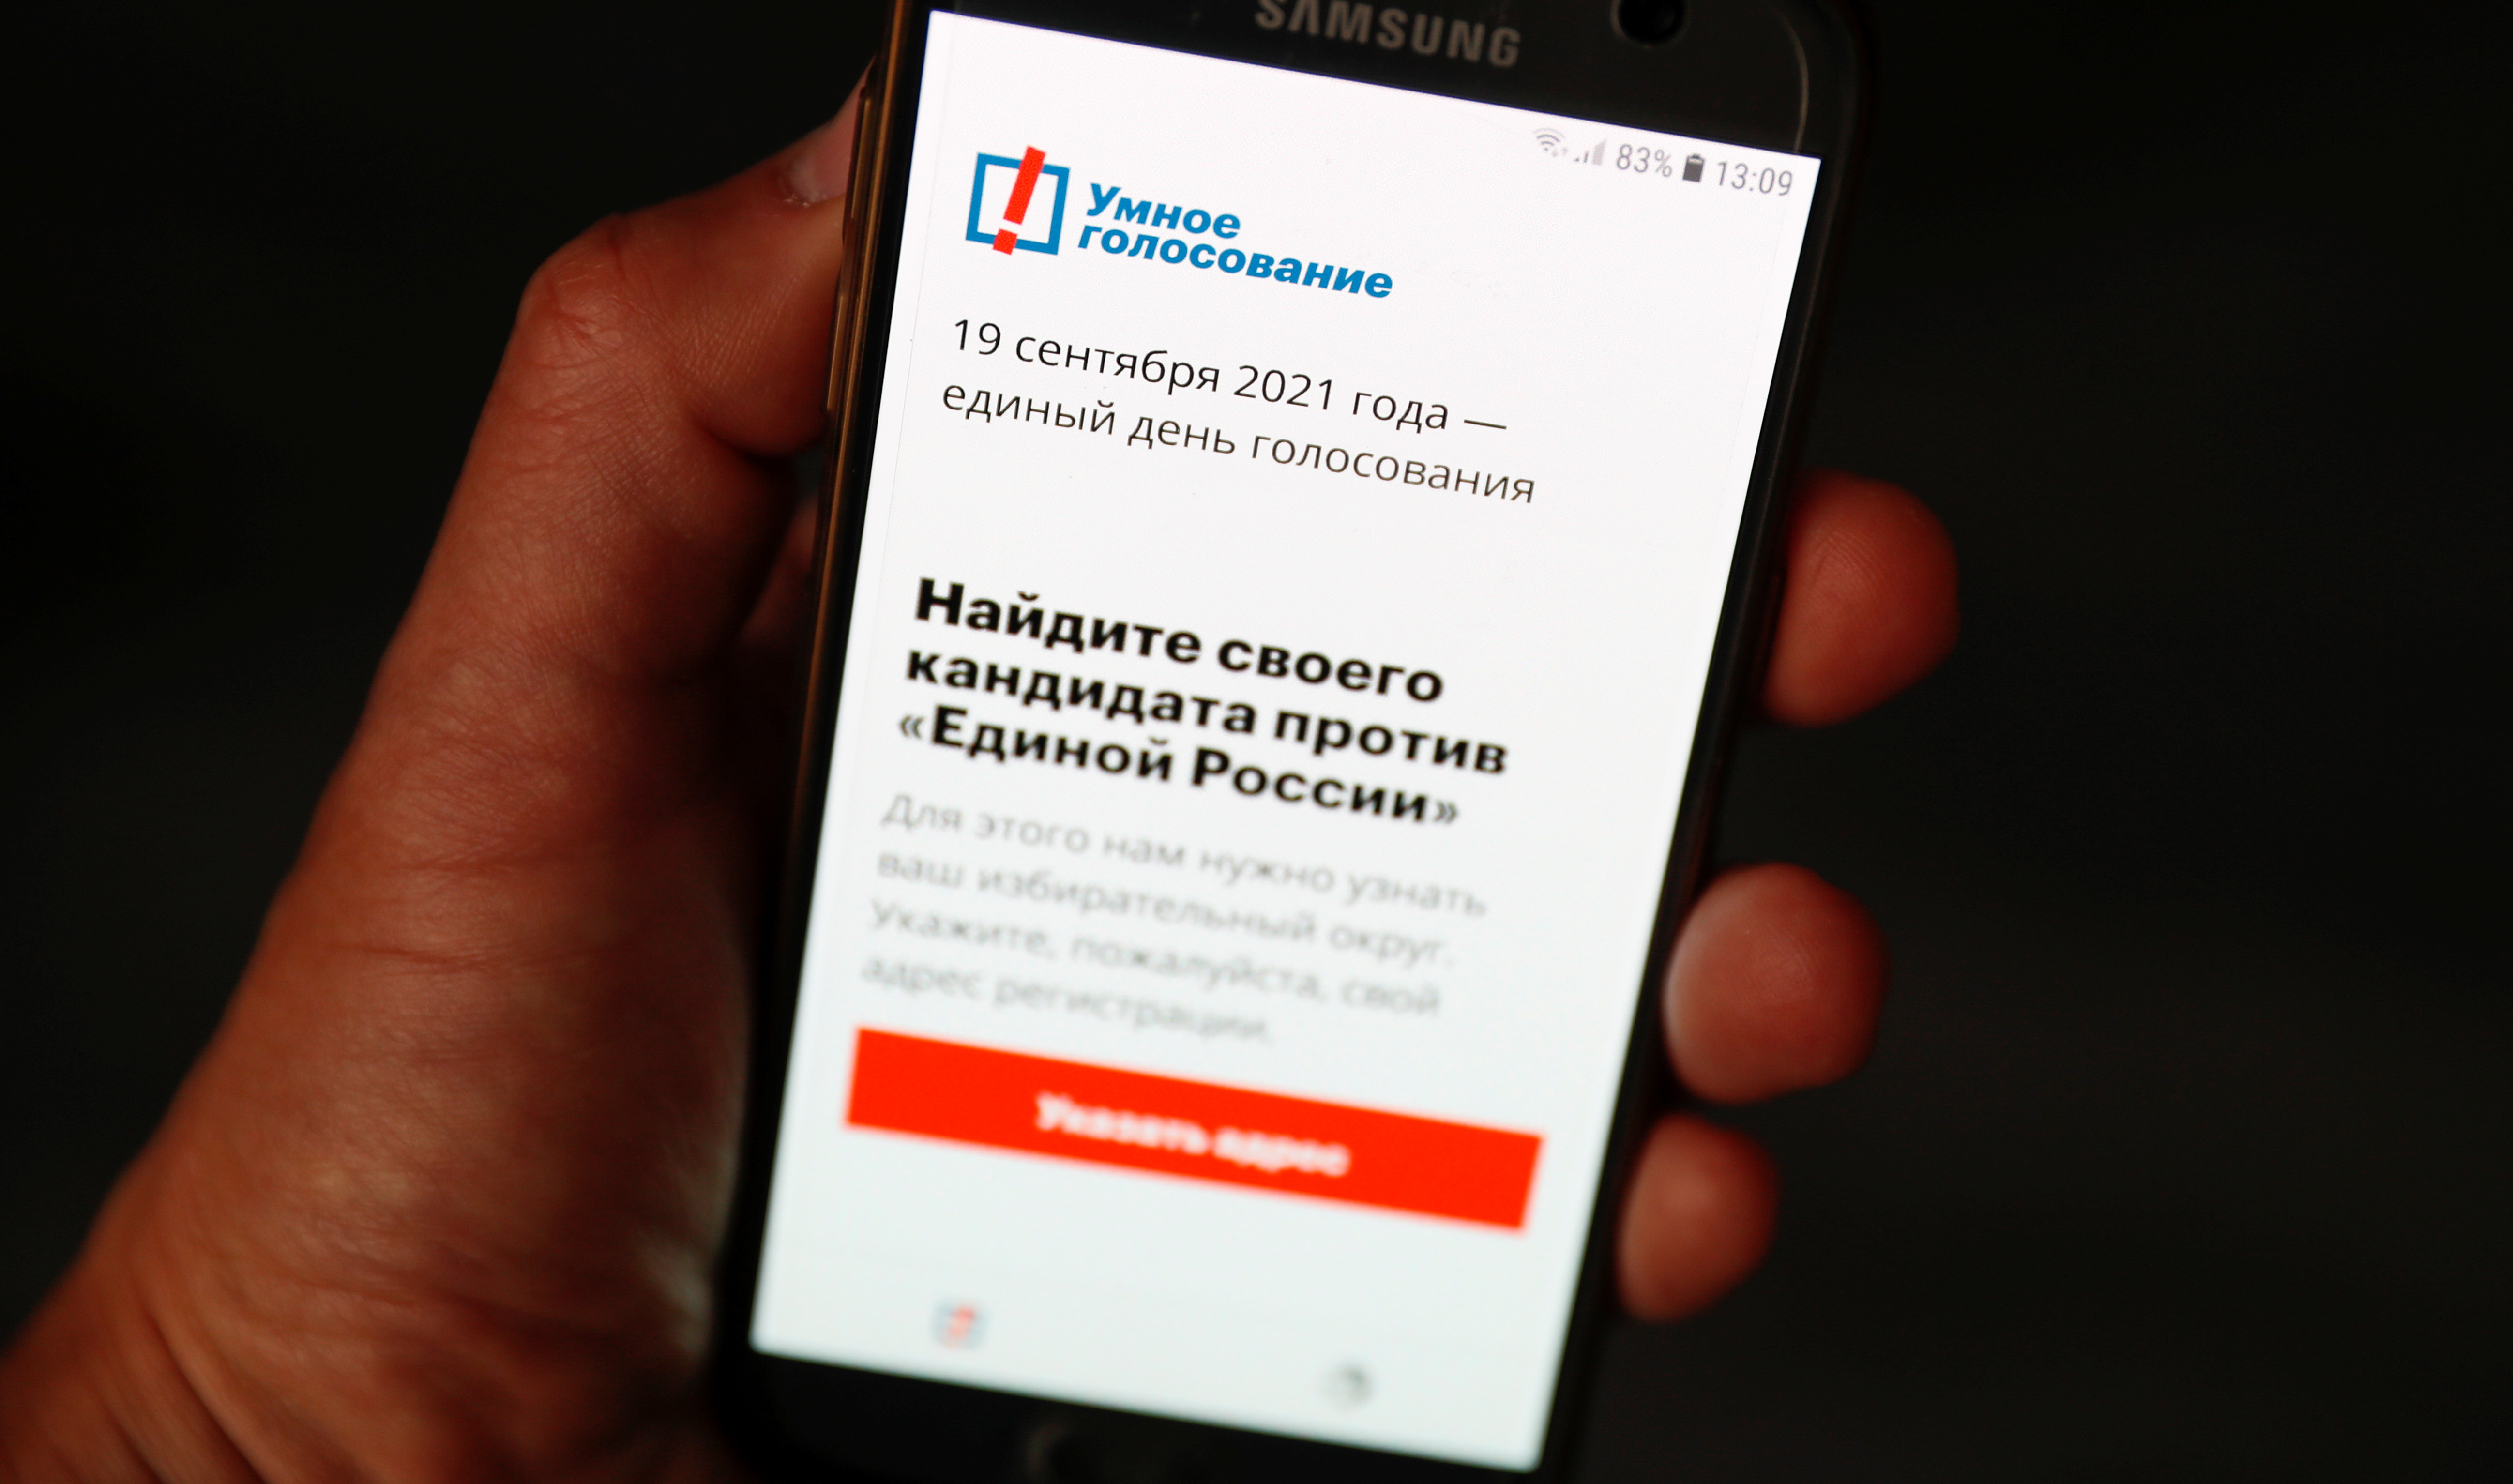 The Russian opposition politician Alexei Navalny's Smart Voting app is seen on a phone, in Moscow, Russia September 16, 2021.  REUTERS/Shamil Zhumatov